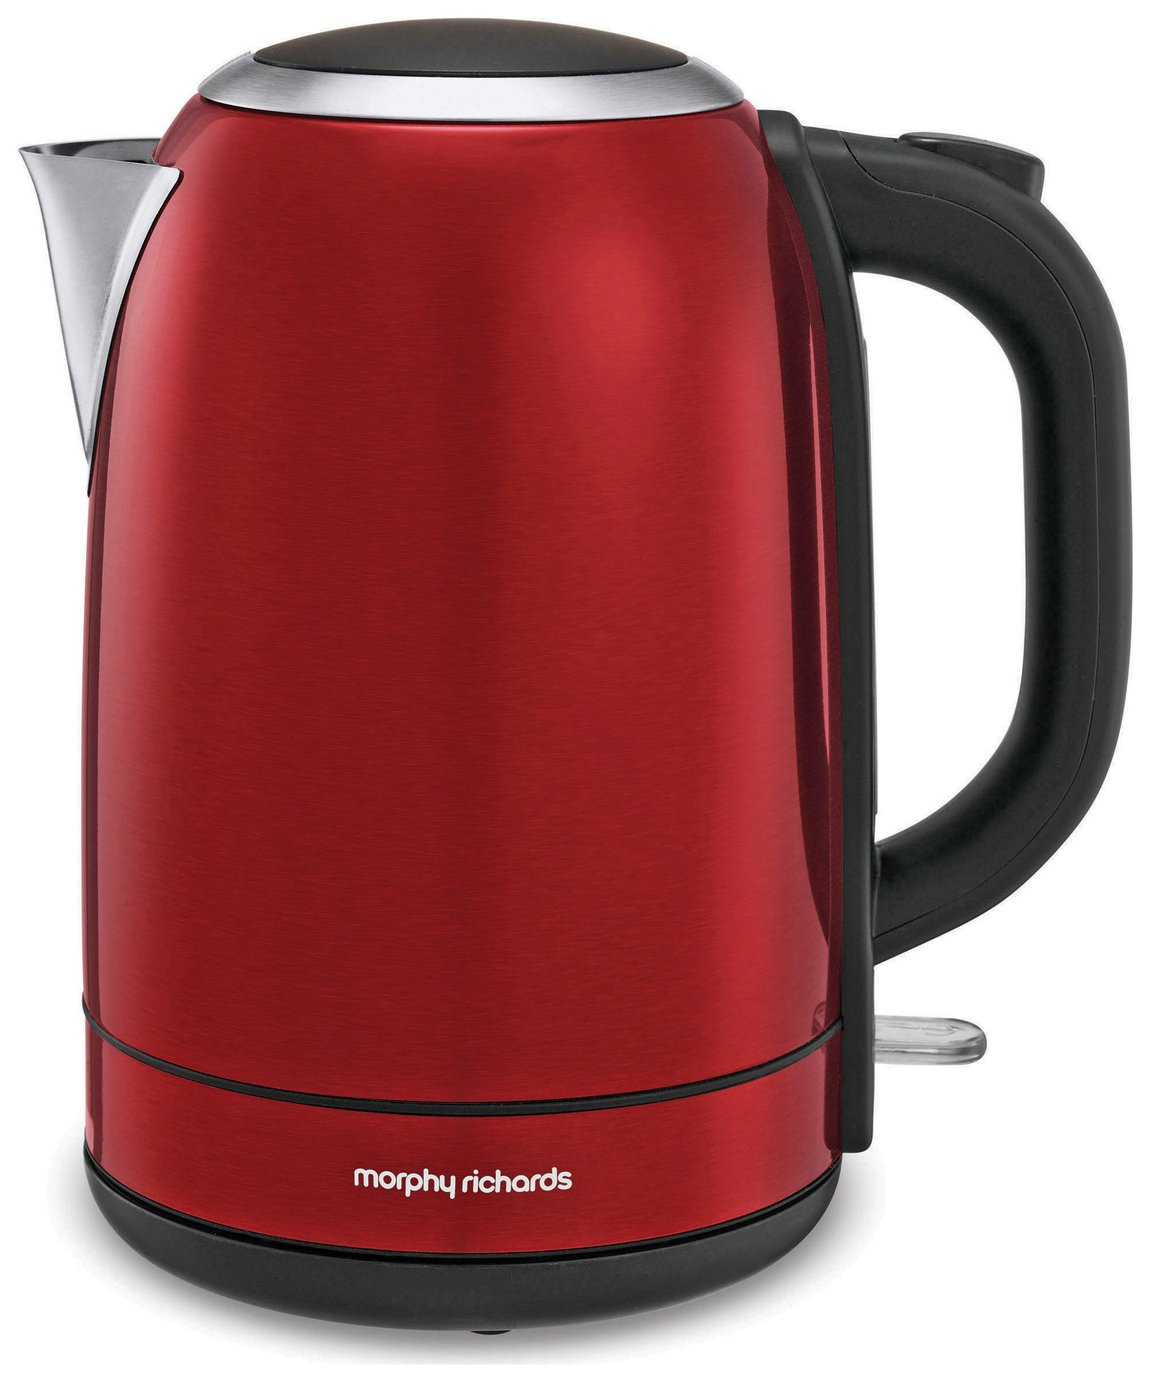 Morphy Richards 102782 Equip Kettle - Red